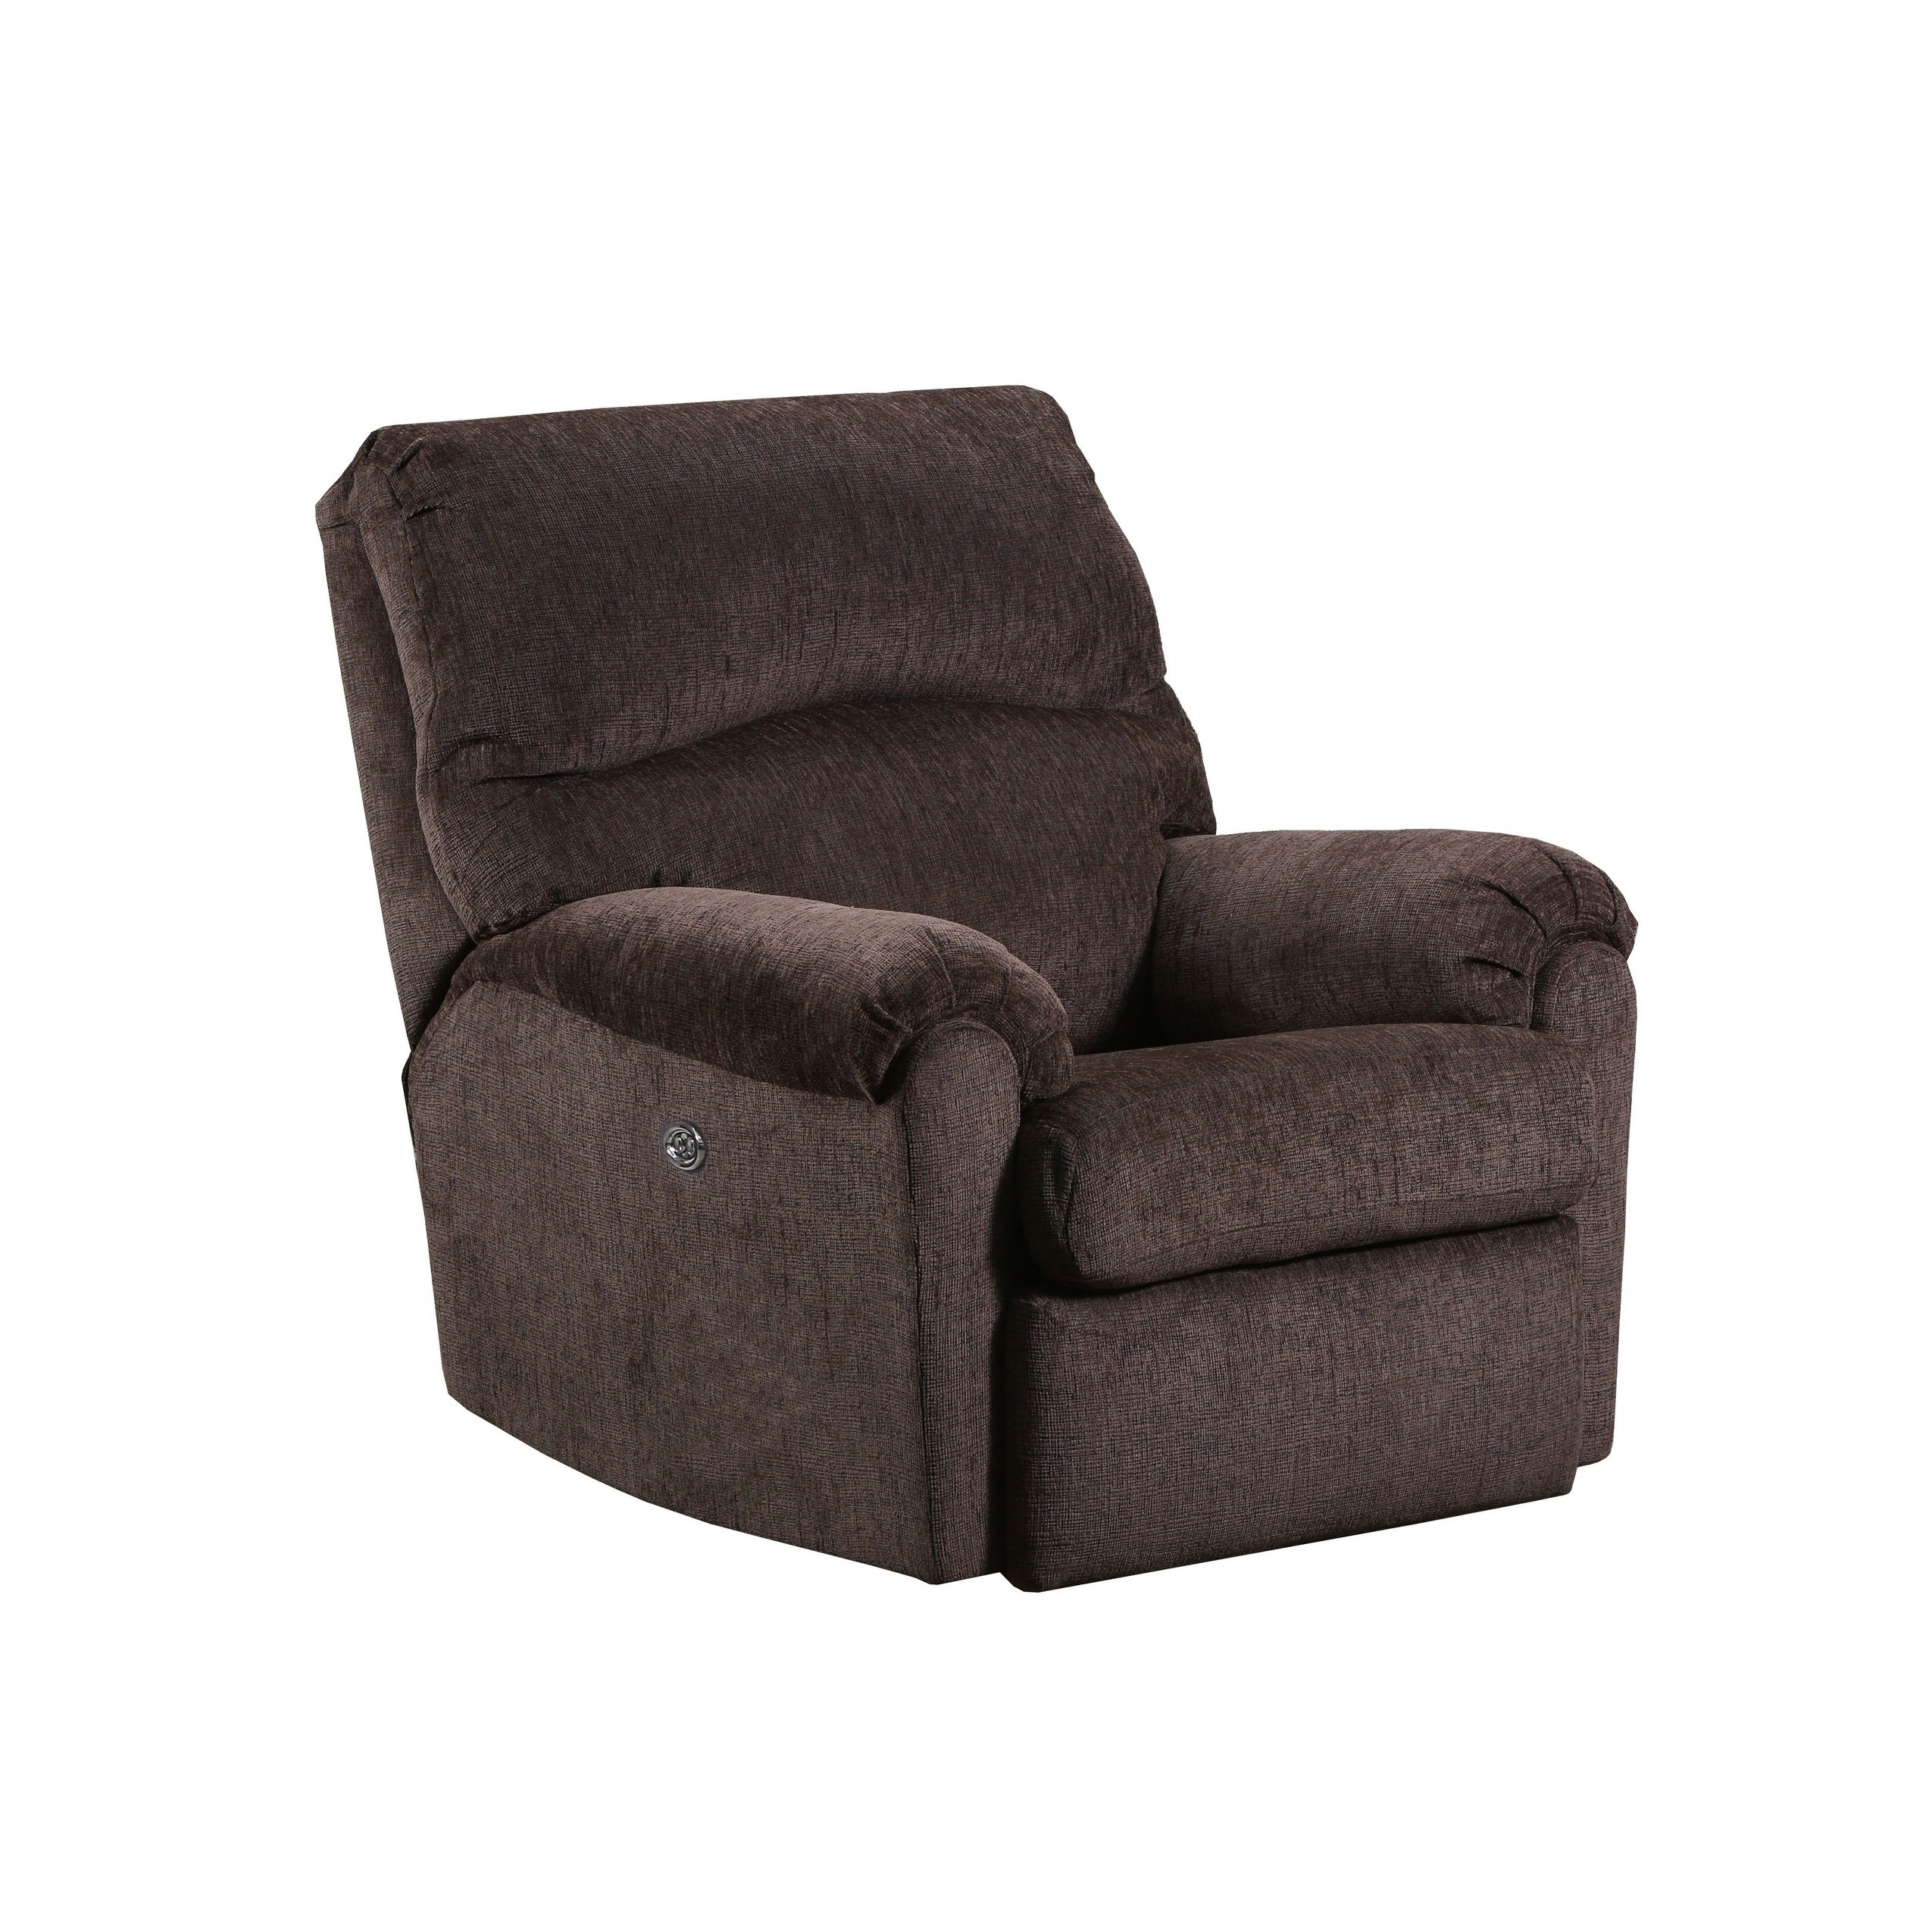 Shop Simmons Upholstery Elan Coffee Power Recliner – Ships To Canada Pertaining To Gannon Linen Power Swivel Recliners (View 13 of 25)